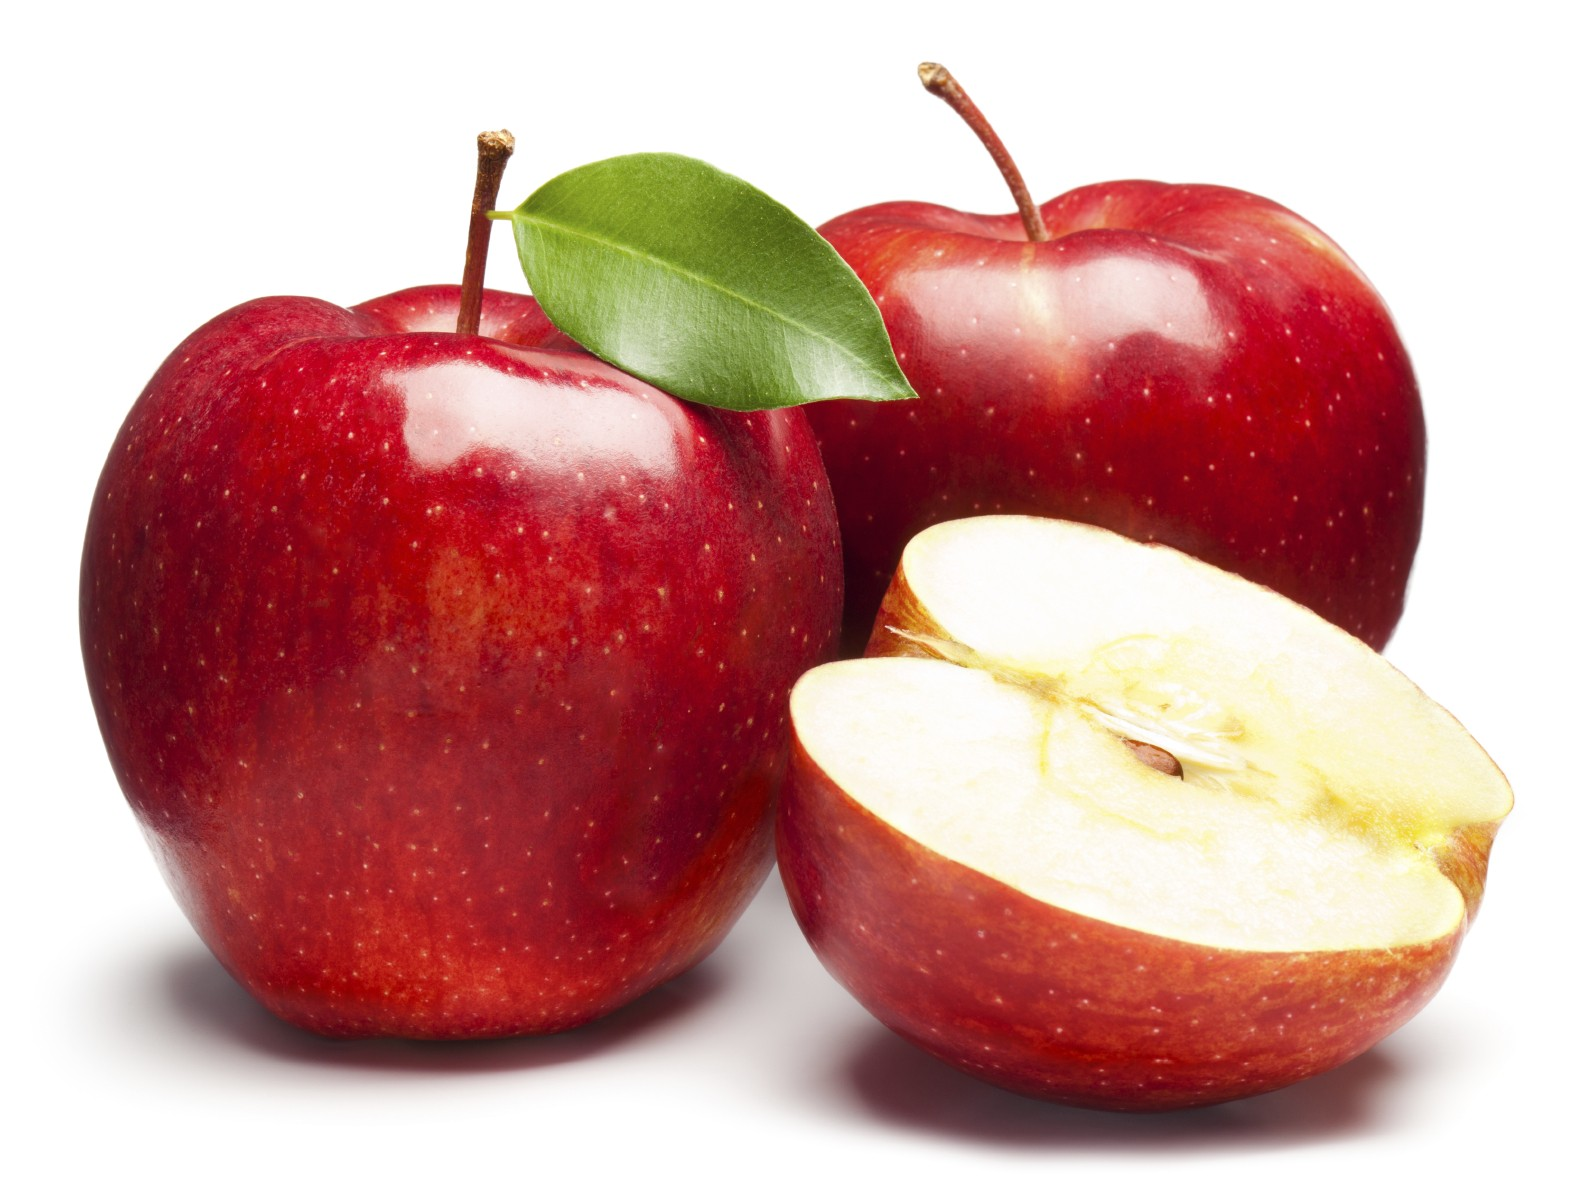 Does An Apple a Day Keep the Doctor Away? | SiOWfa15: Science in